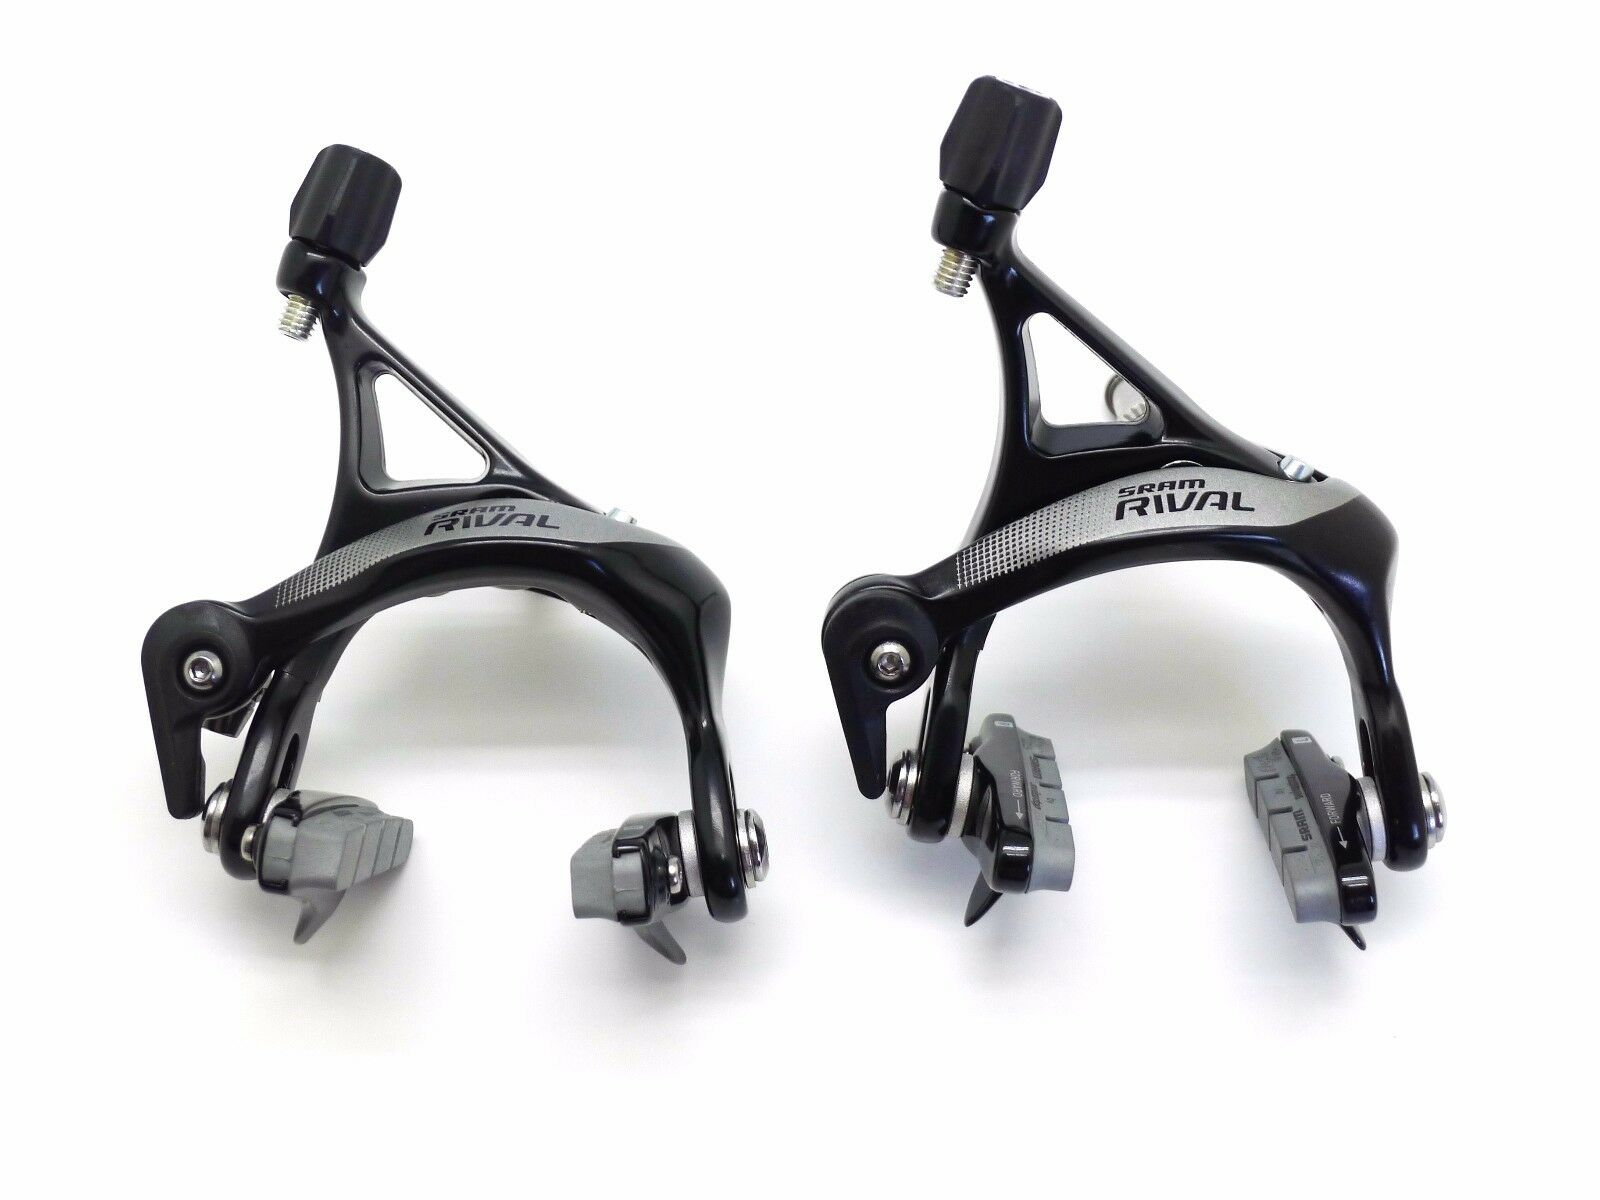 SRAM Rival 22 Mechanical Front & Rear Brake Calipers for Carbon Rims